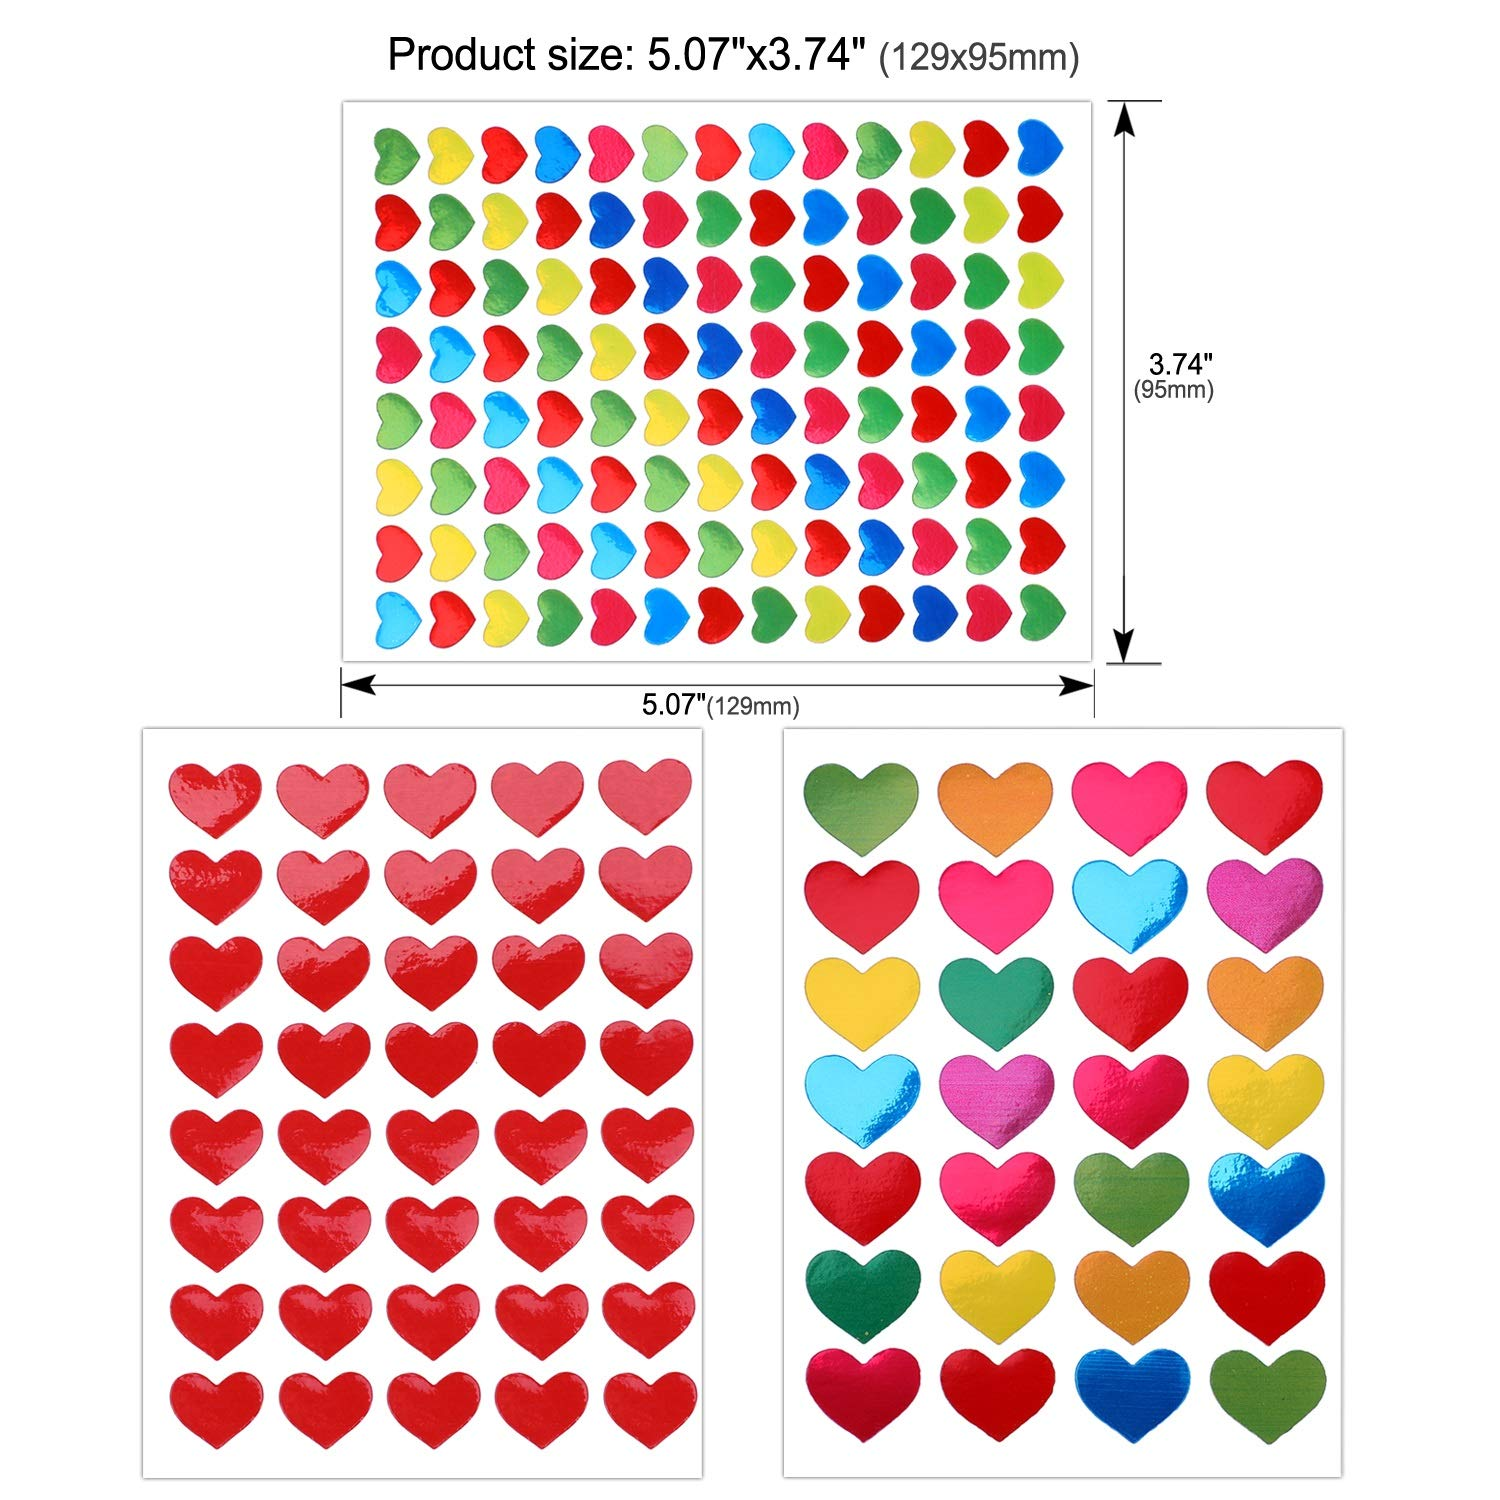 3000+ Colorful Heart Konsait 60 Sheets Valentine Heart Stickers Love Decorative Sticker for Kids Envelopes Cards Craft Scrapbooking for Great Party Favors Gift Prize Class Rewards Award Praise